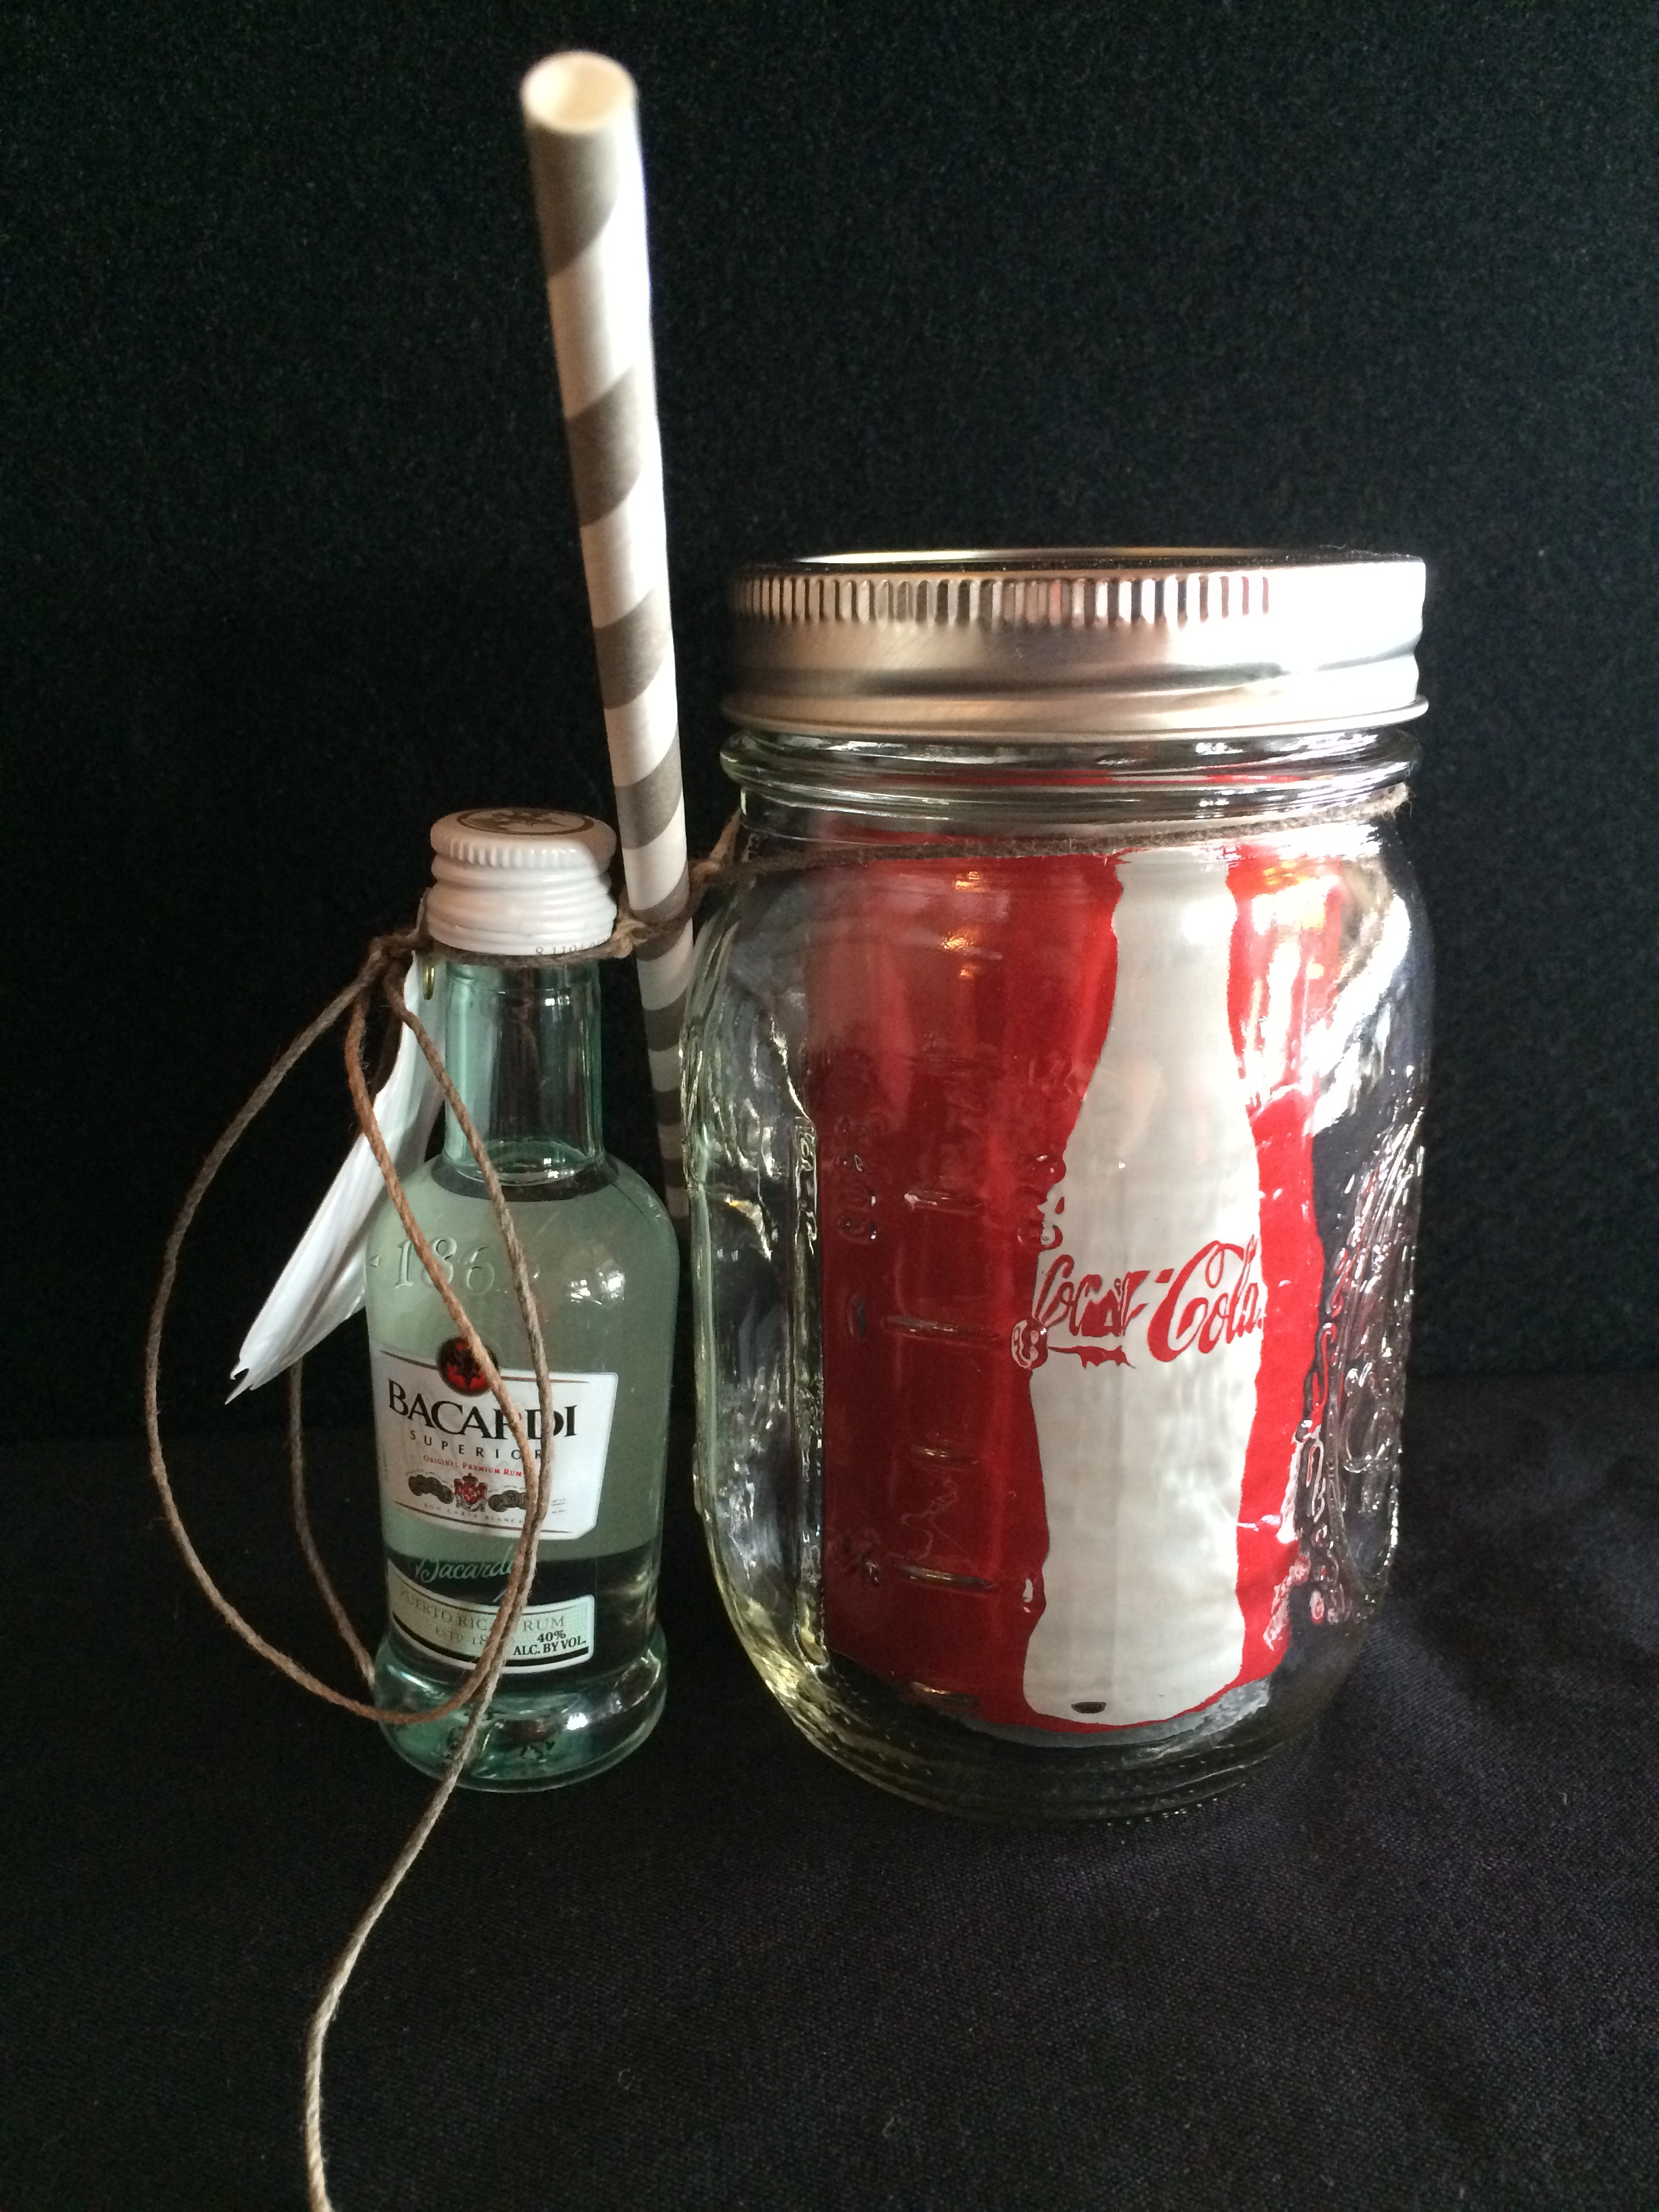 Wedding Favor Idea Diy Mixed Drink Mason Jar Kit Albany Wedding Dj Sweet 16 Dj Reunion Party Mitzvah Dj Of Troy Schenectady Saratoga Dj Lake George Dj